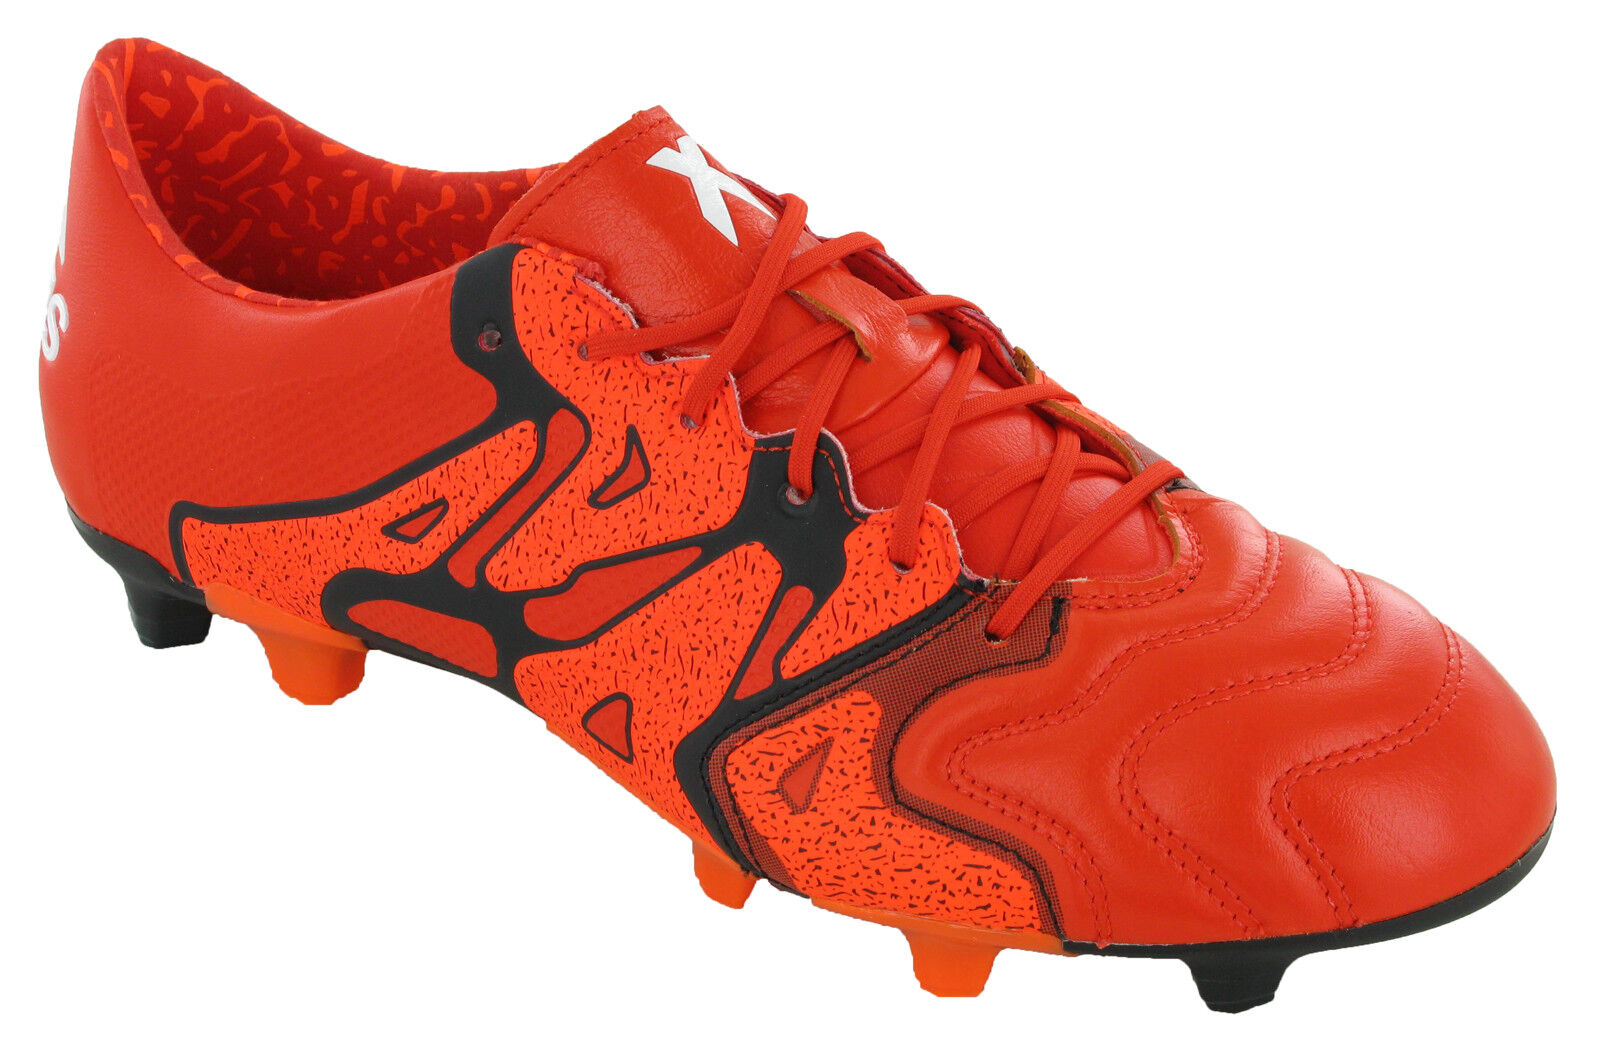 bc21284b2249 Adidas Mens Leather Football Boots Moulded Studs X15.1 FG AG UK 6-12 -  (B26979)